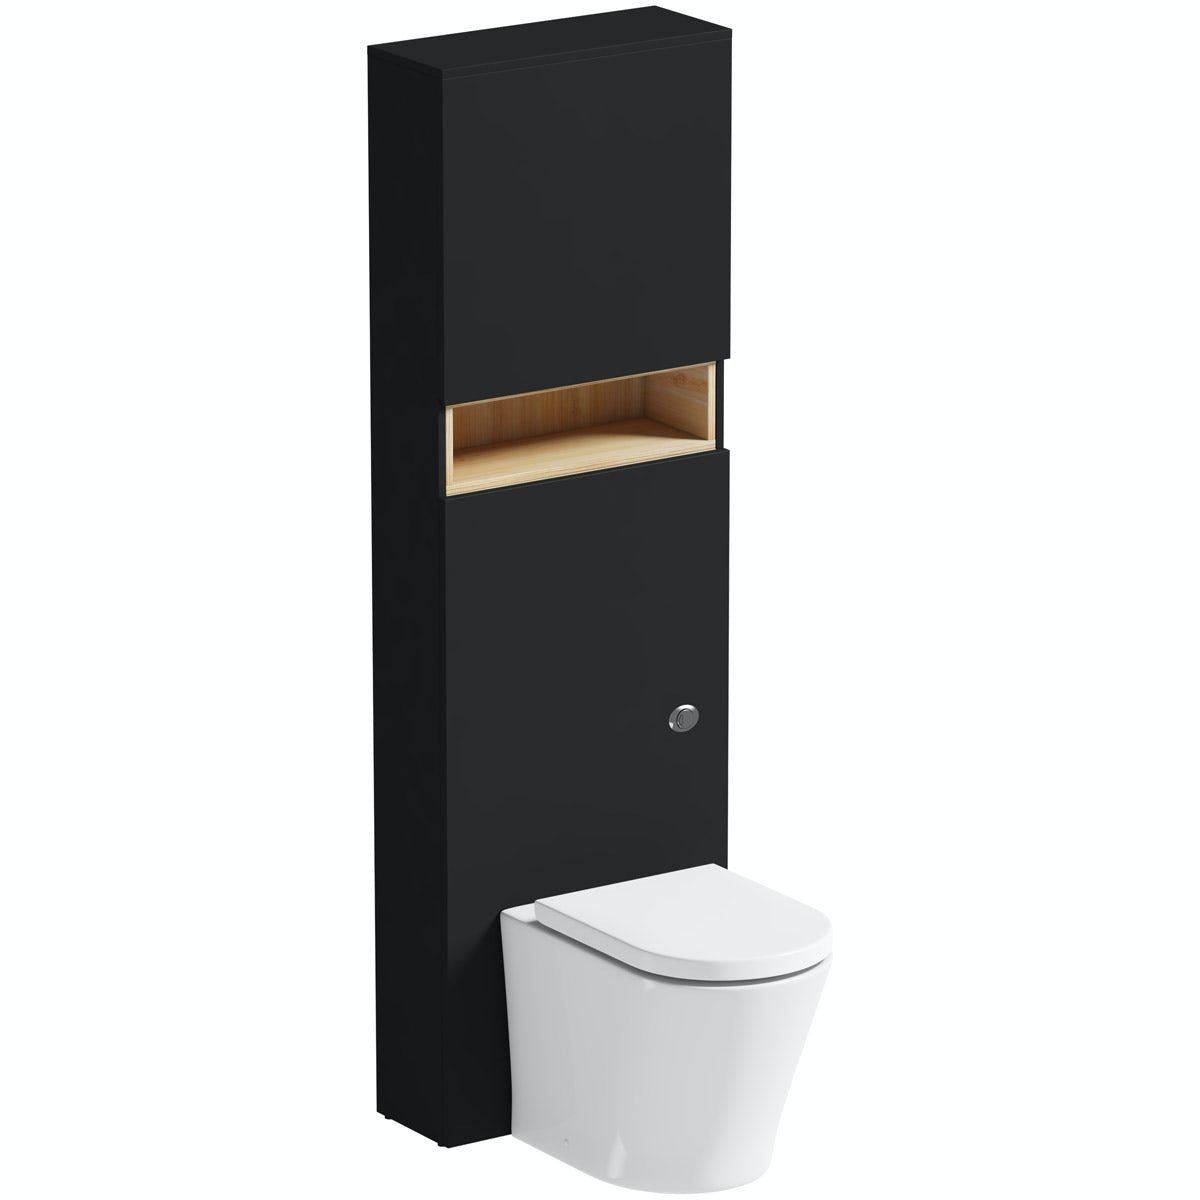 Mode Tate anthracite & oak tall toilet unit with contemporary toilet and seat